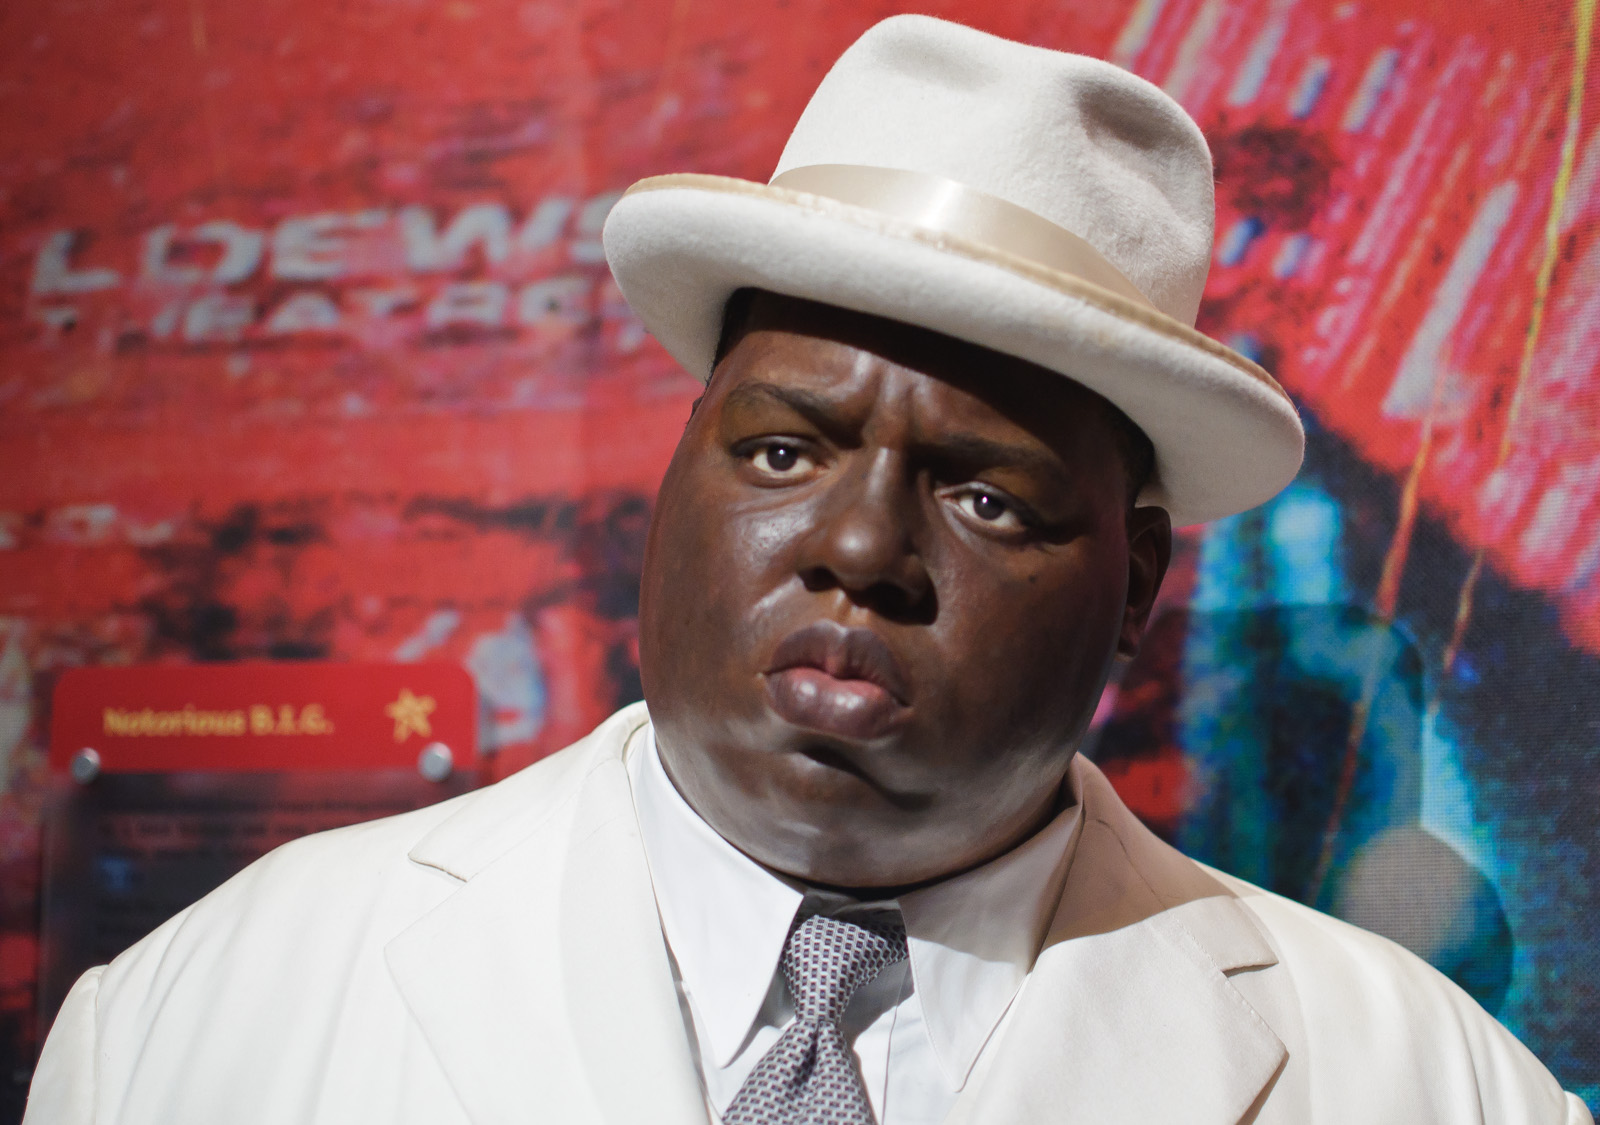 The_Notorious_B.I.G._%288111820251%29.jpg